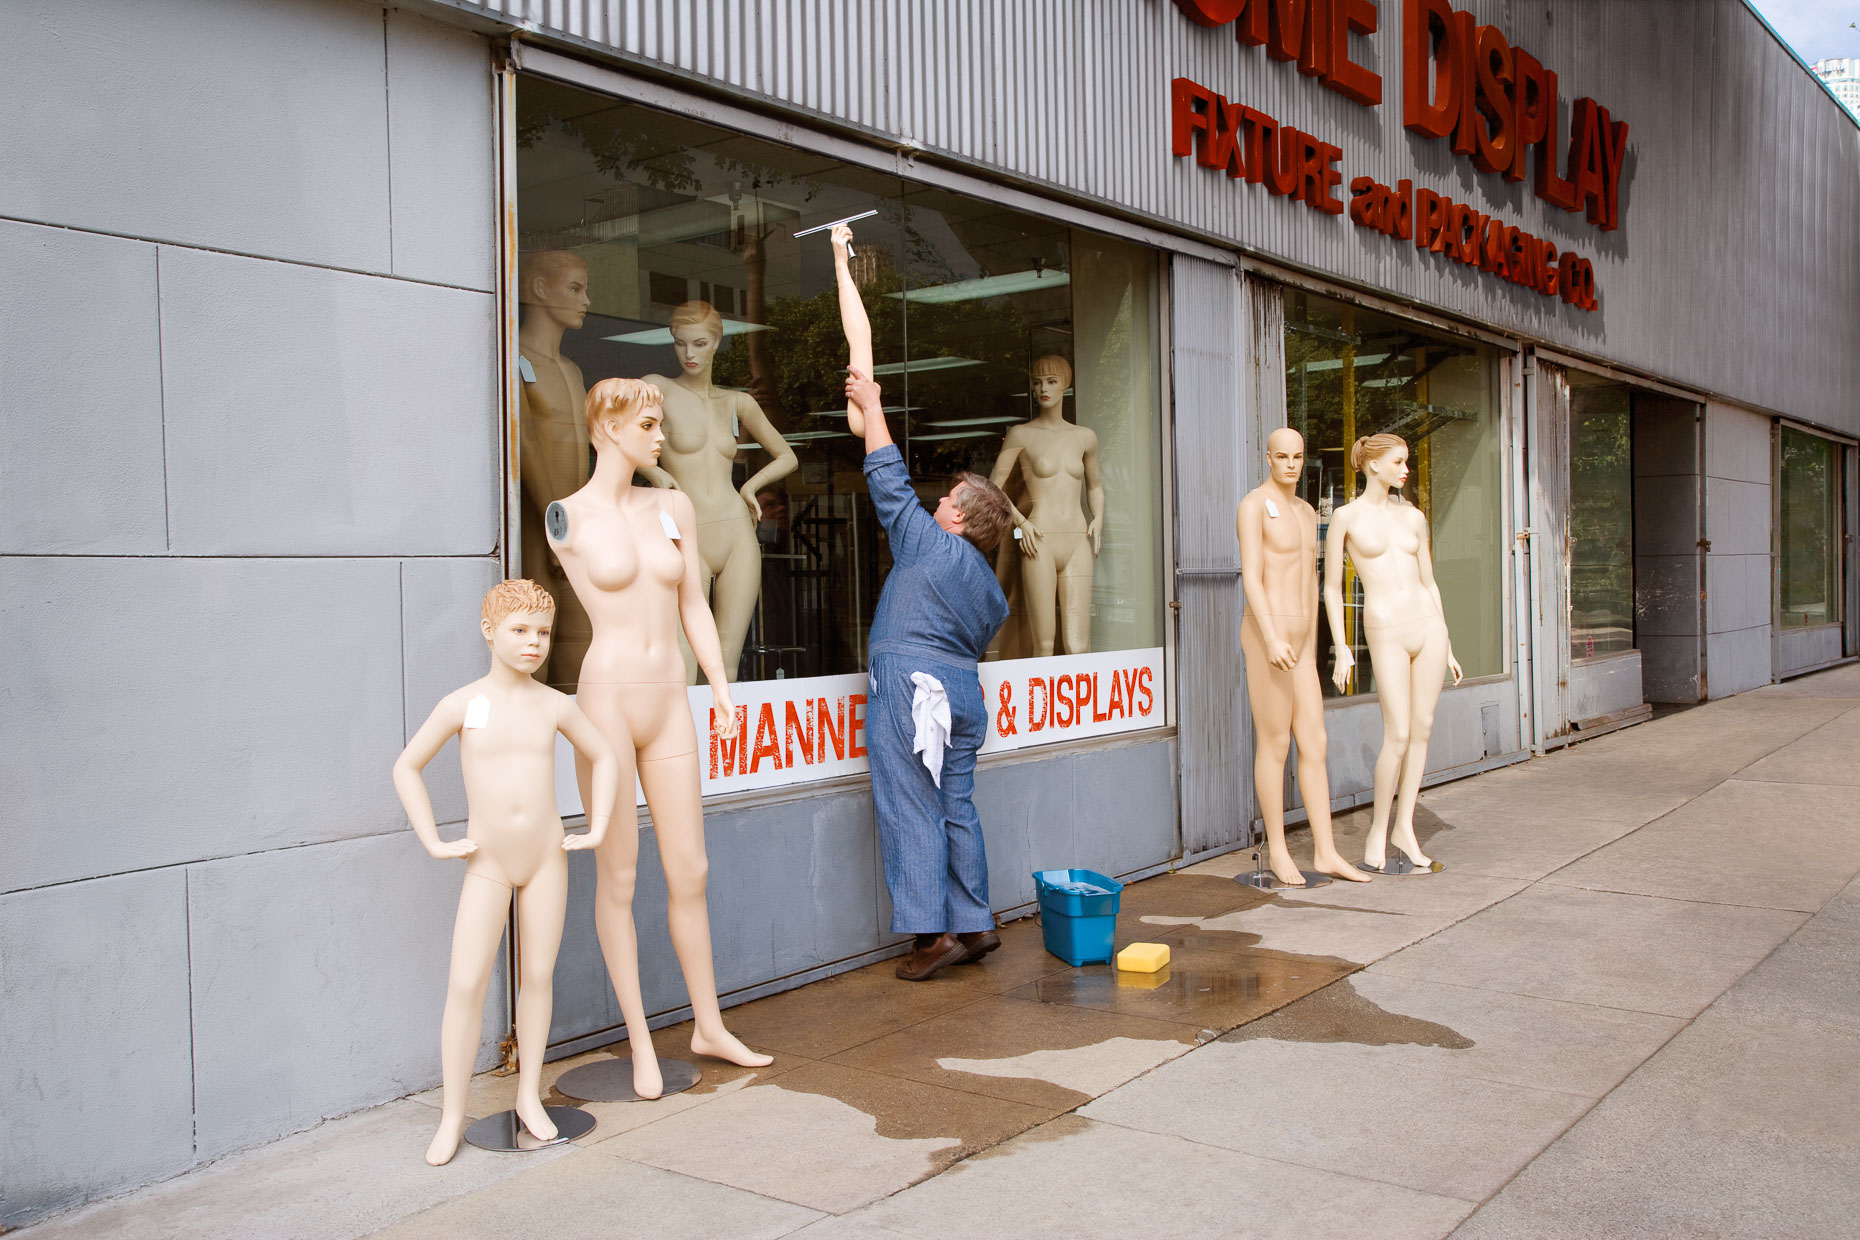 Man washing store windows uses mannequin arm to reach high. David Zaitz